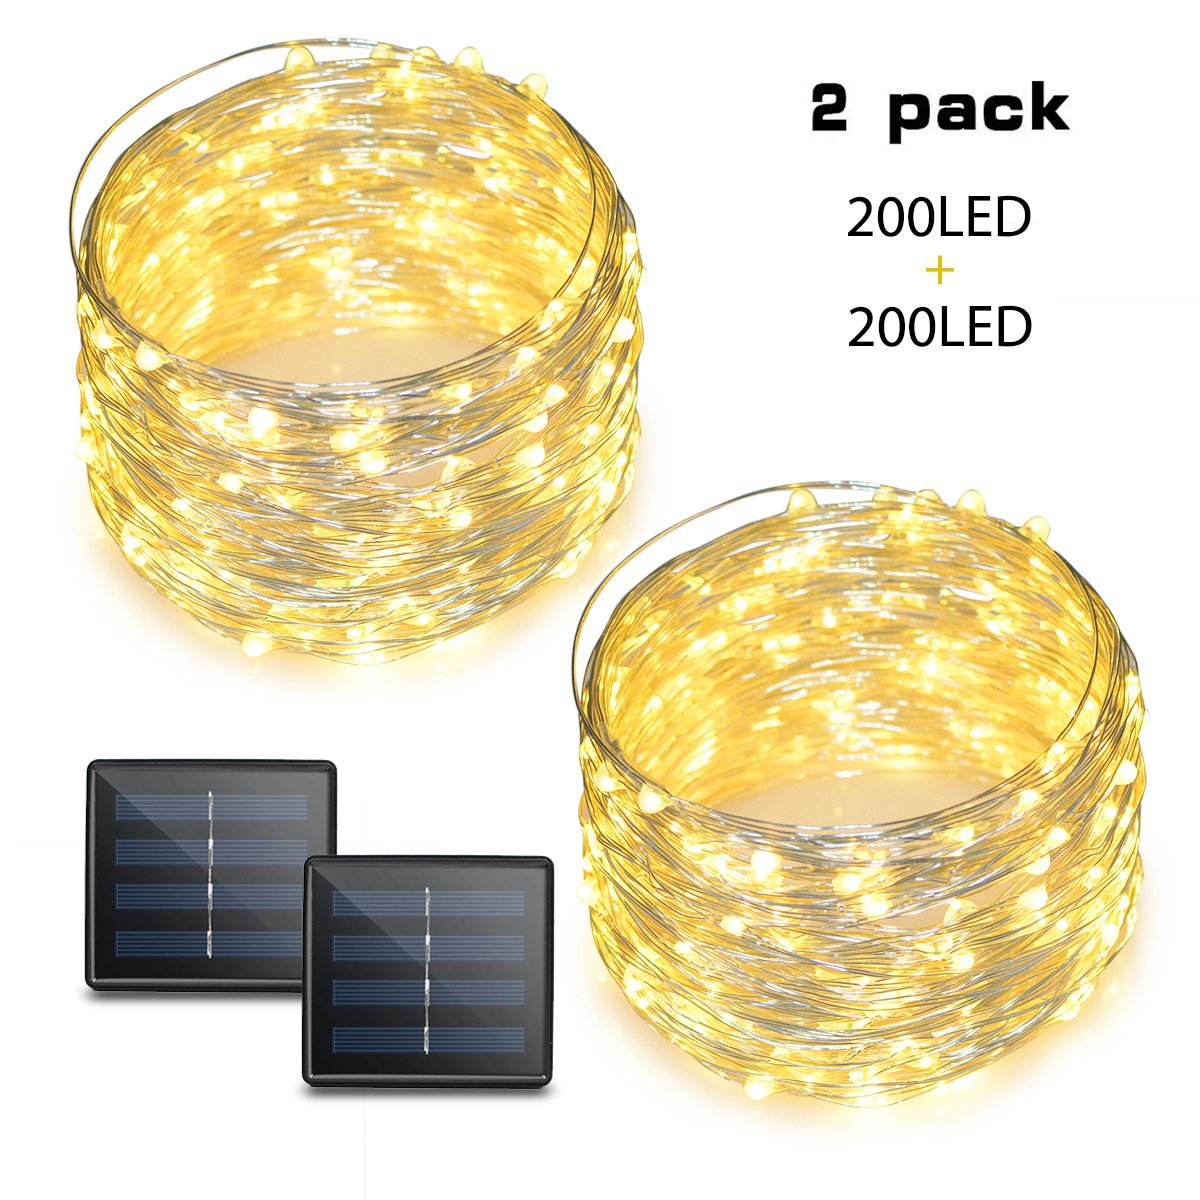 Binval Solar String Lights, 72ft 200Led, Copper Wire Led String Lights Ambiance Lighting Patio, Lawn, Garden, Landscape, Home, Wedding, Christmas Party, Xmas Tree, Waterproof (Warm White, 2-Pack) by Binval